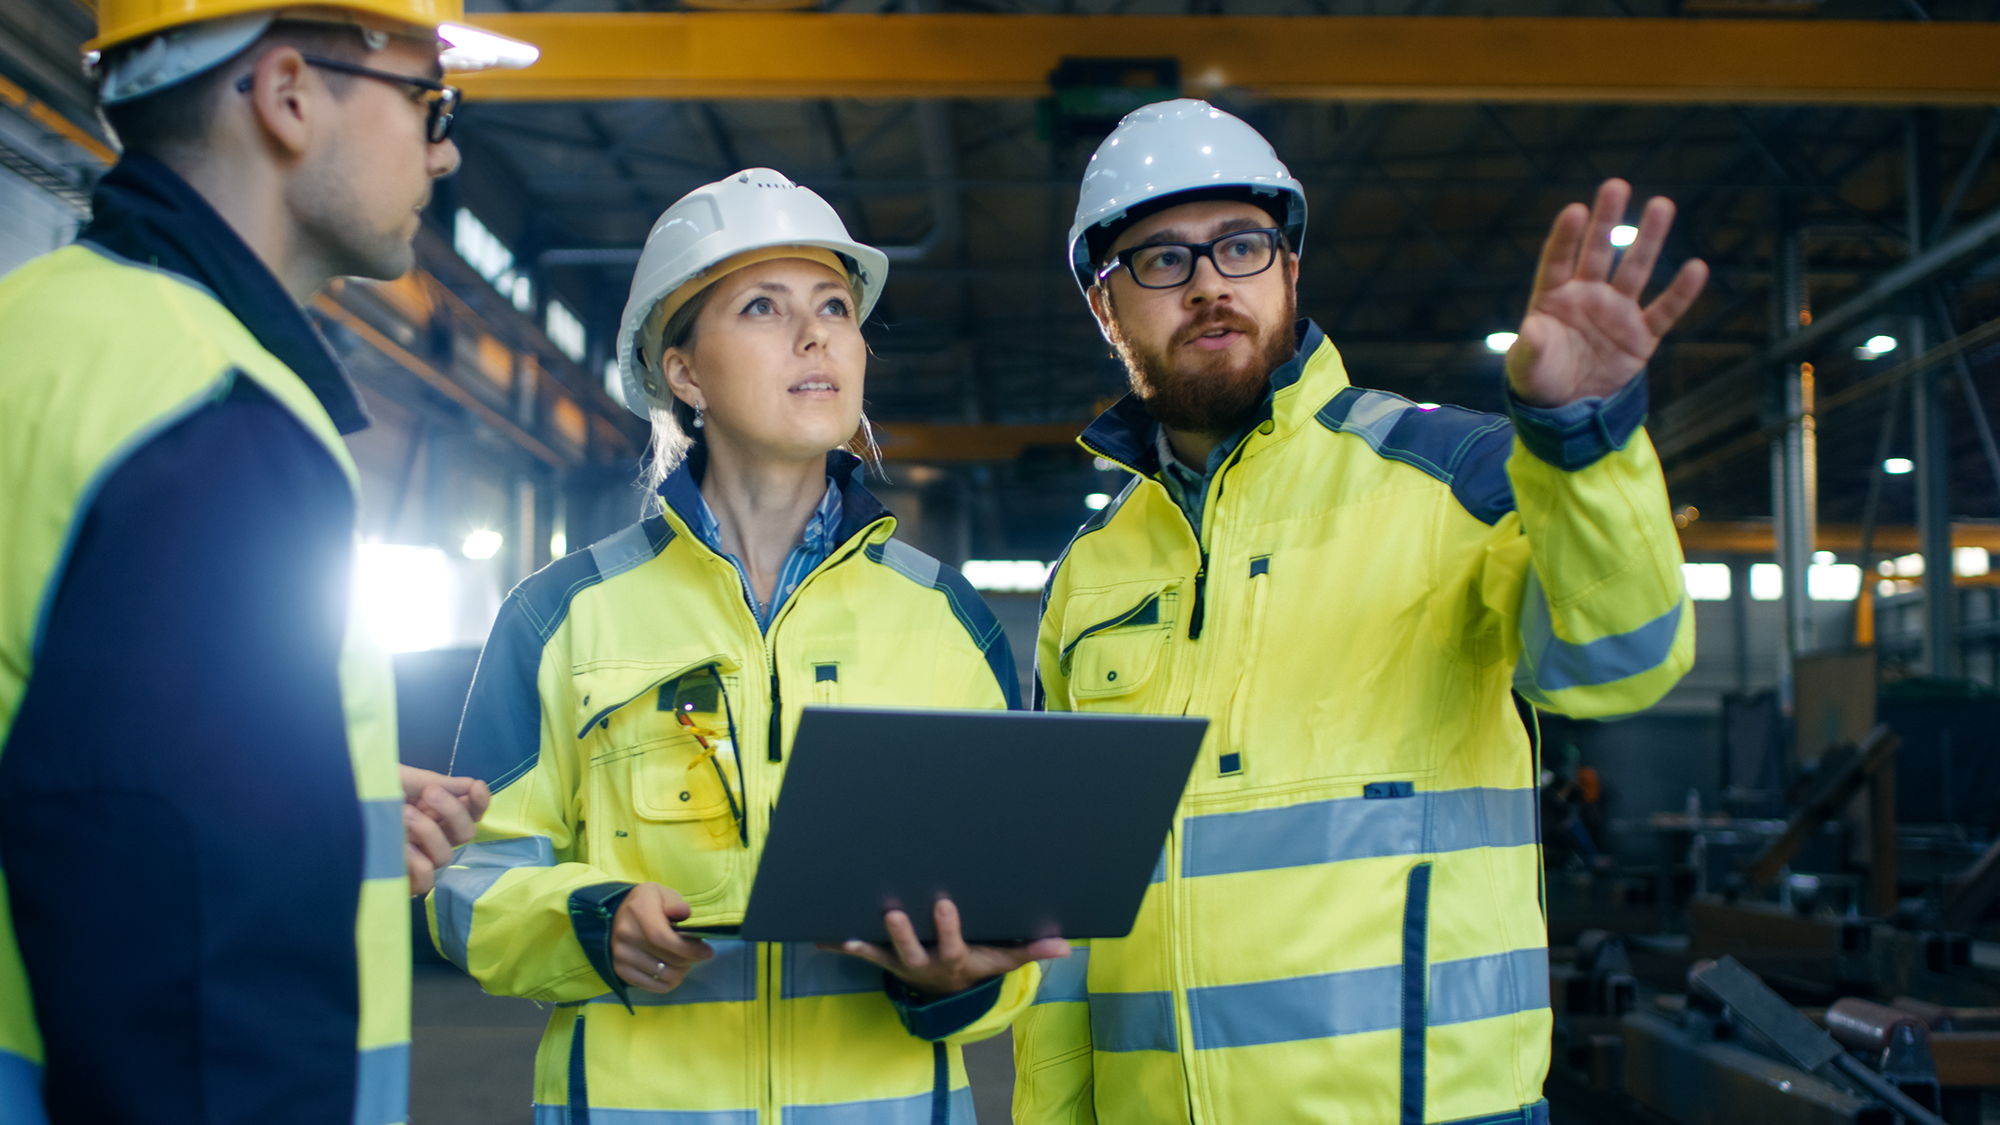 Improving Productivity in Construction